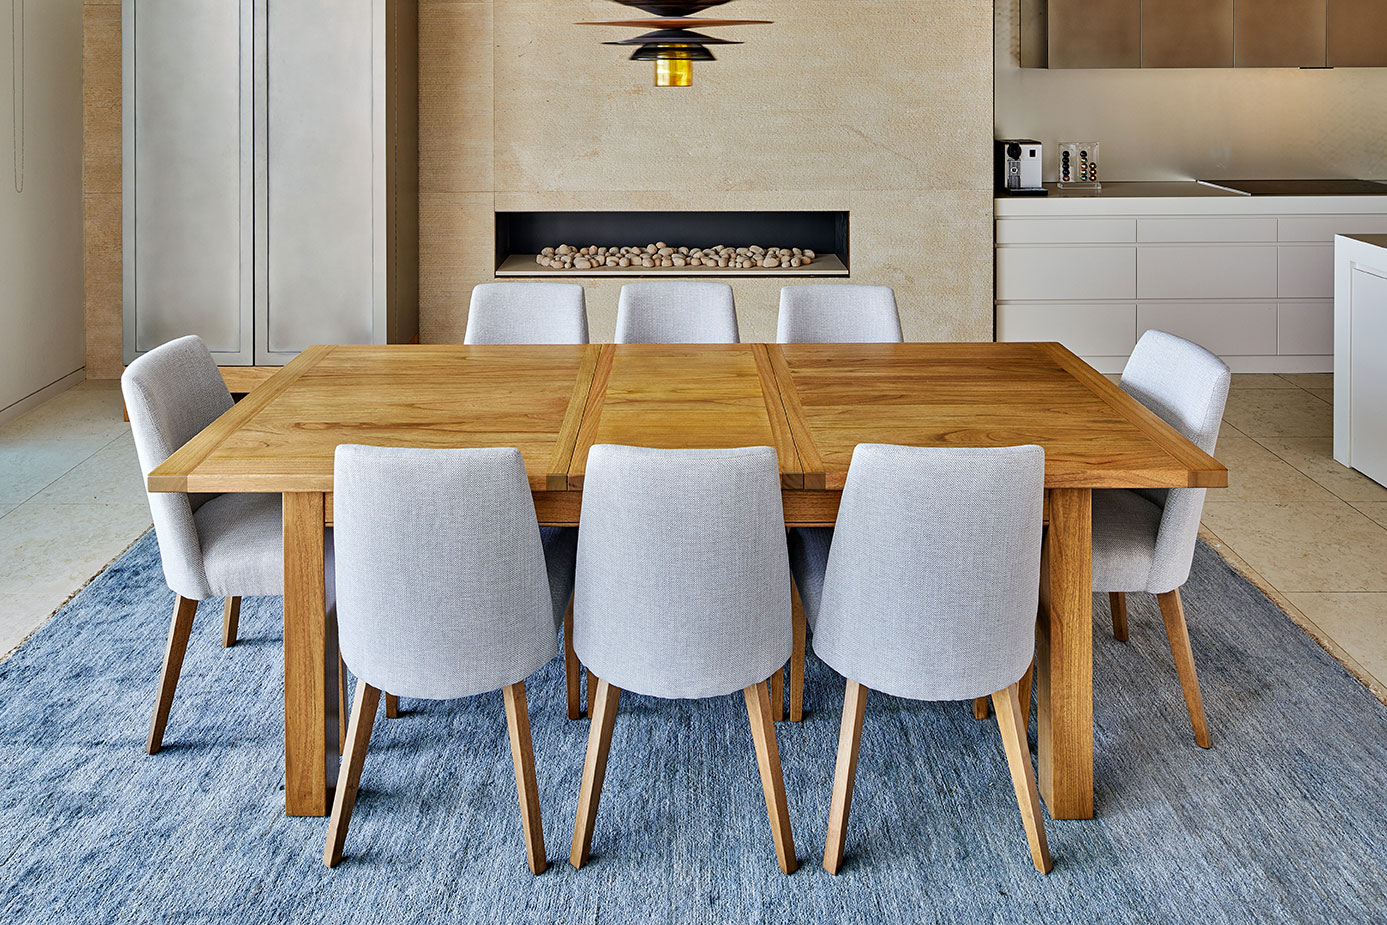 The Bellagio Large Extension Dining Table Available In Solid Mango Wood Parquetry Or Plain Top White Cedar Is A Simple Yet Stylish Design For